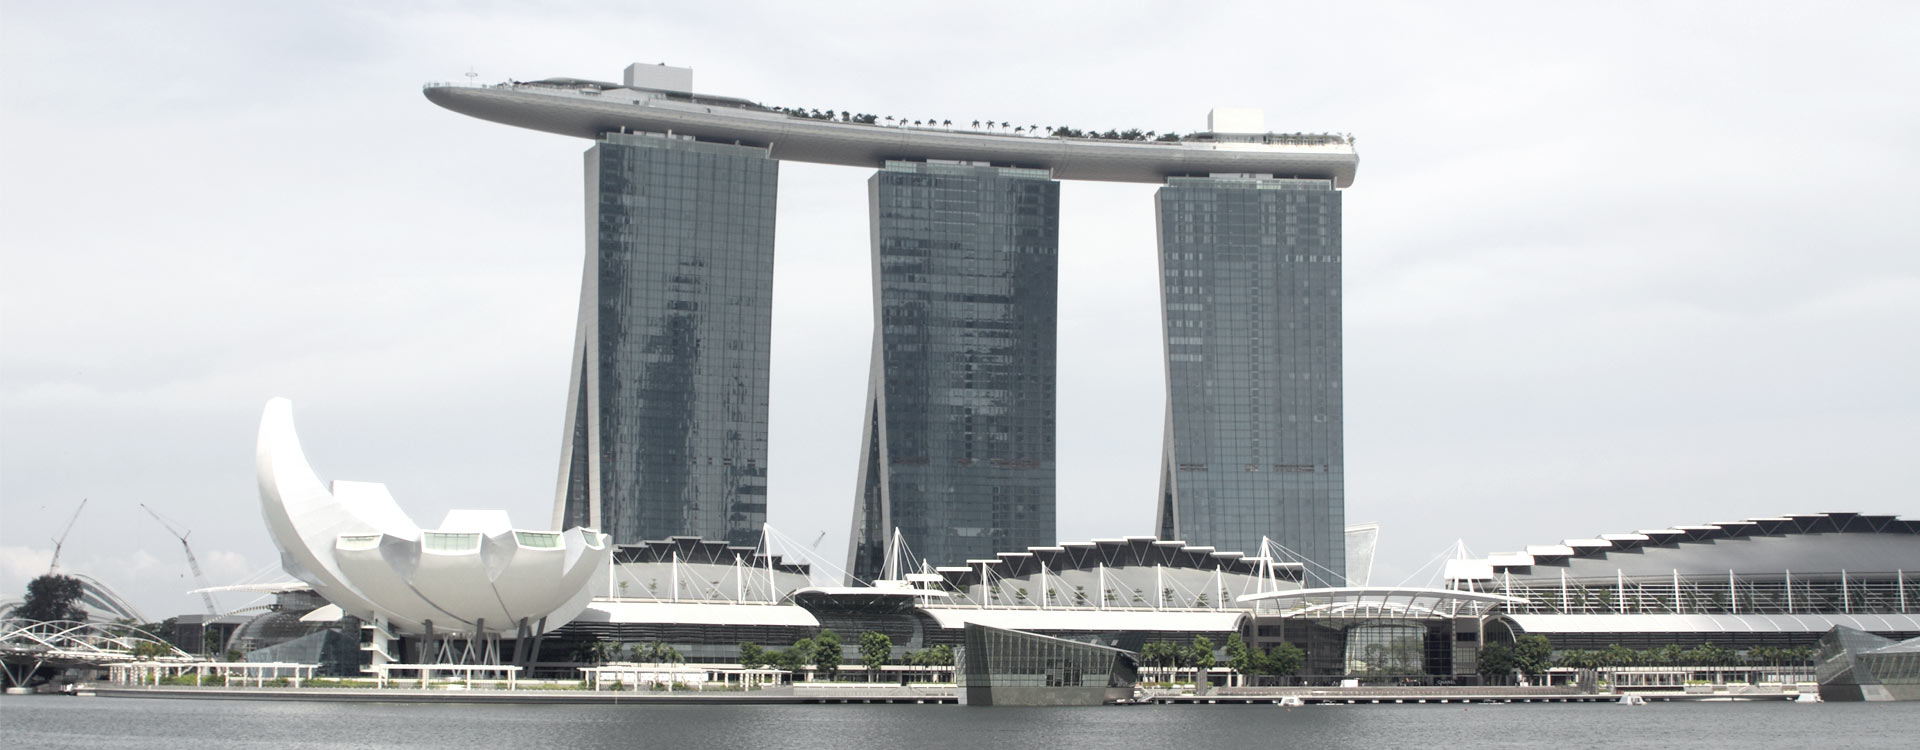 Engineering Marina Bay Sands Resorts- Exterior view-Façades